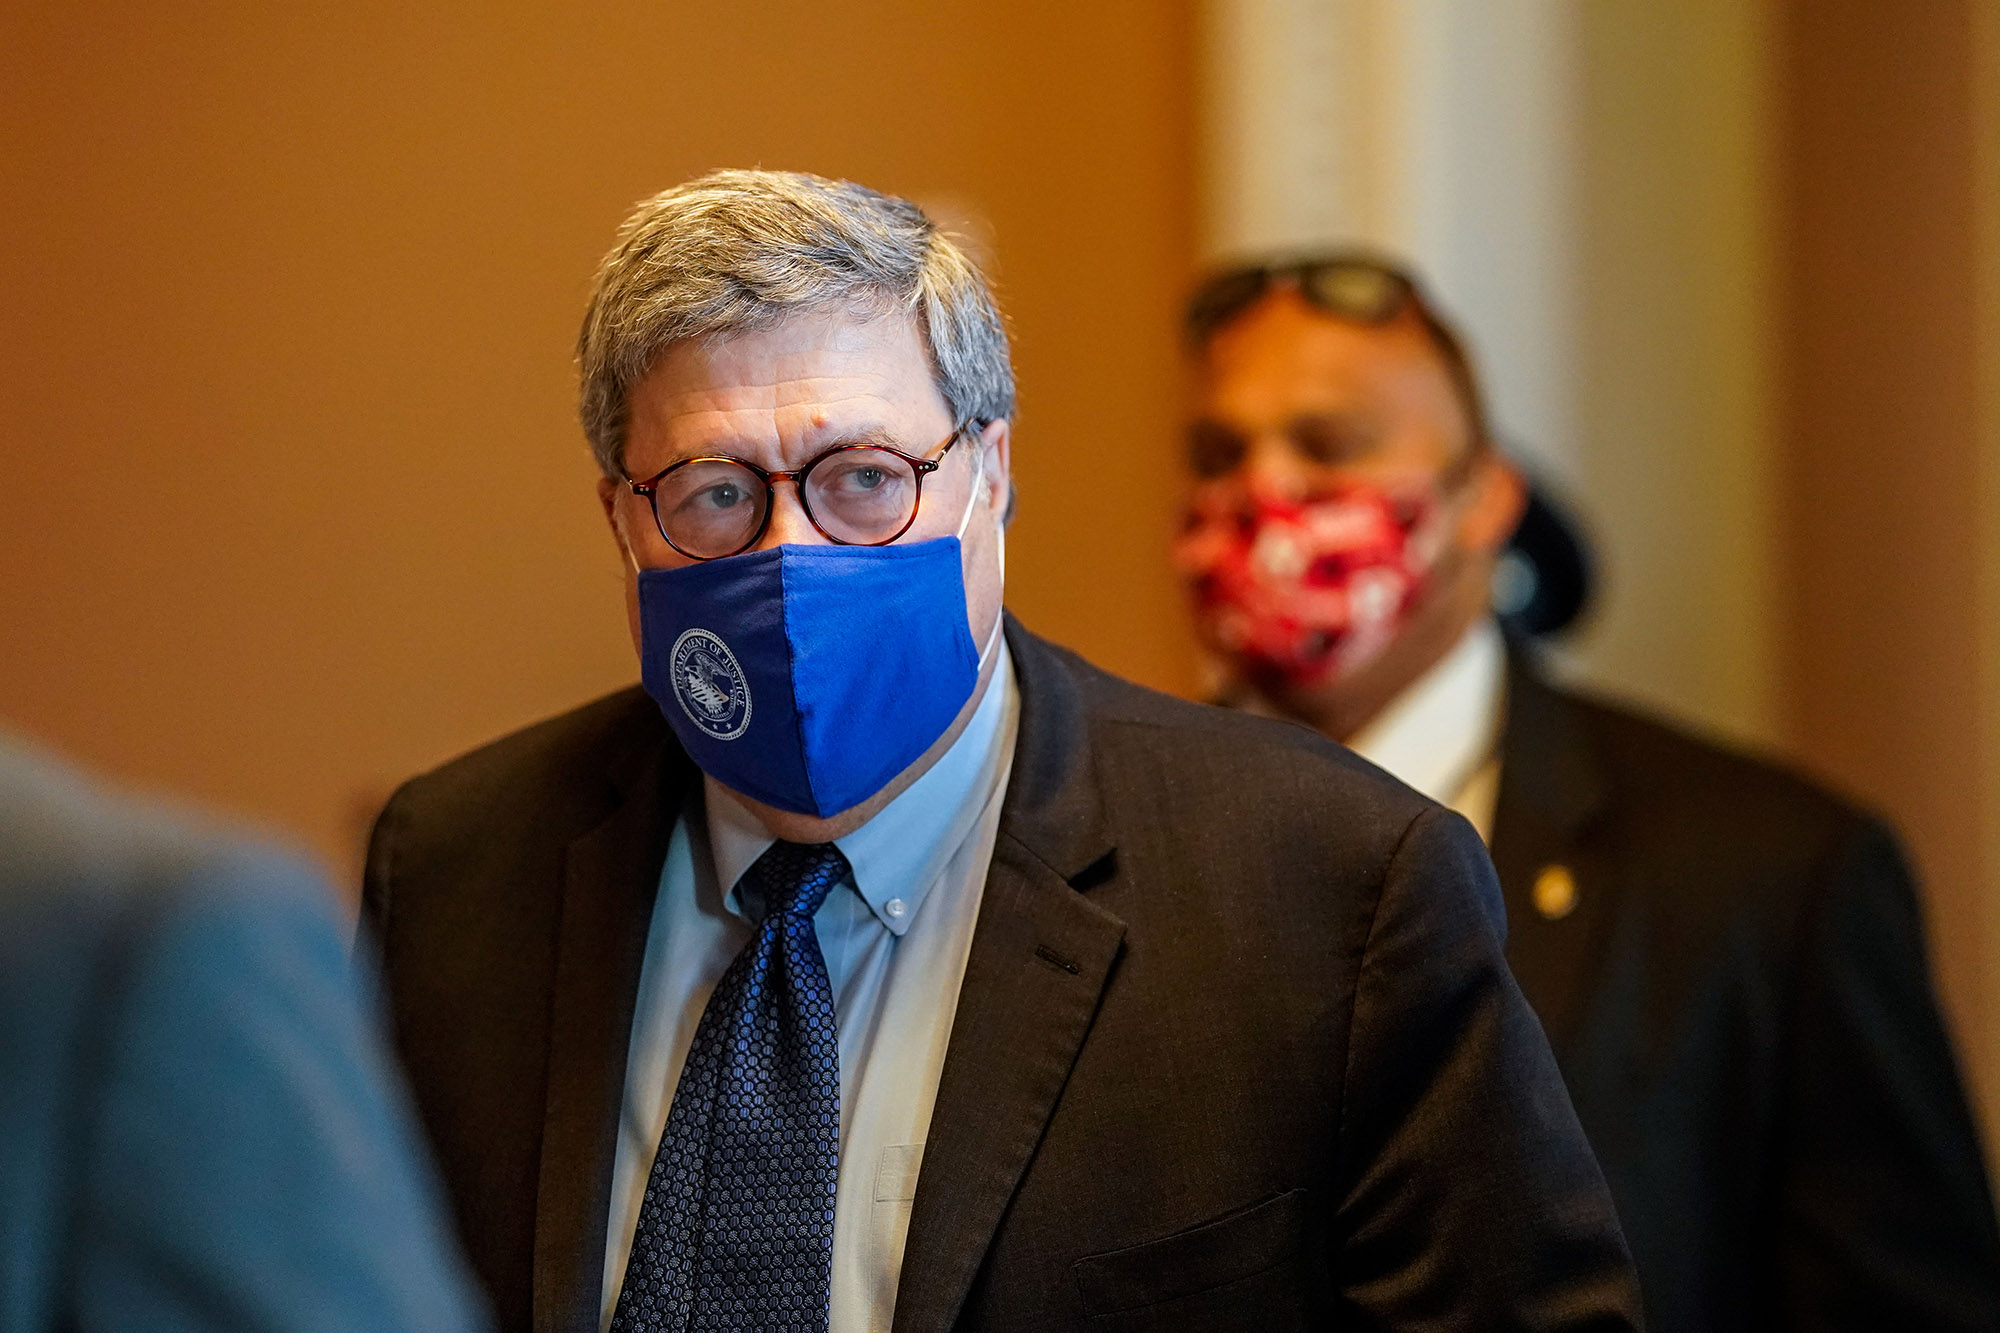 U.S. Attorney General William Barr exits the U.S. Capitol Building on Monday, November 9, in Washington, DC.